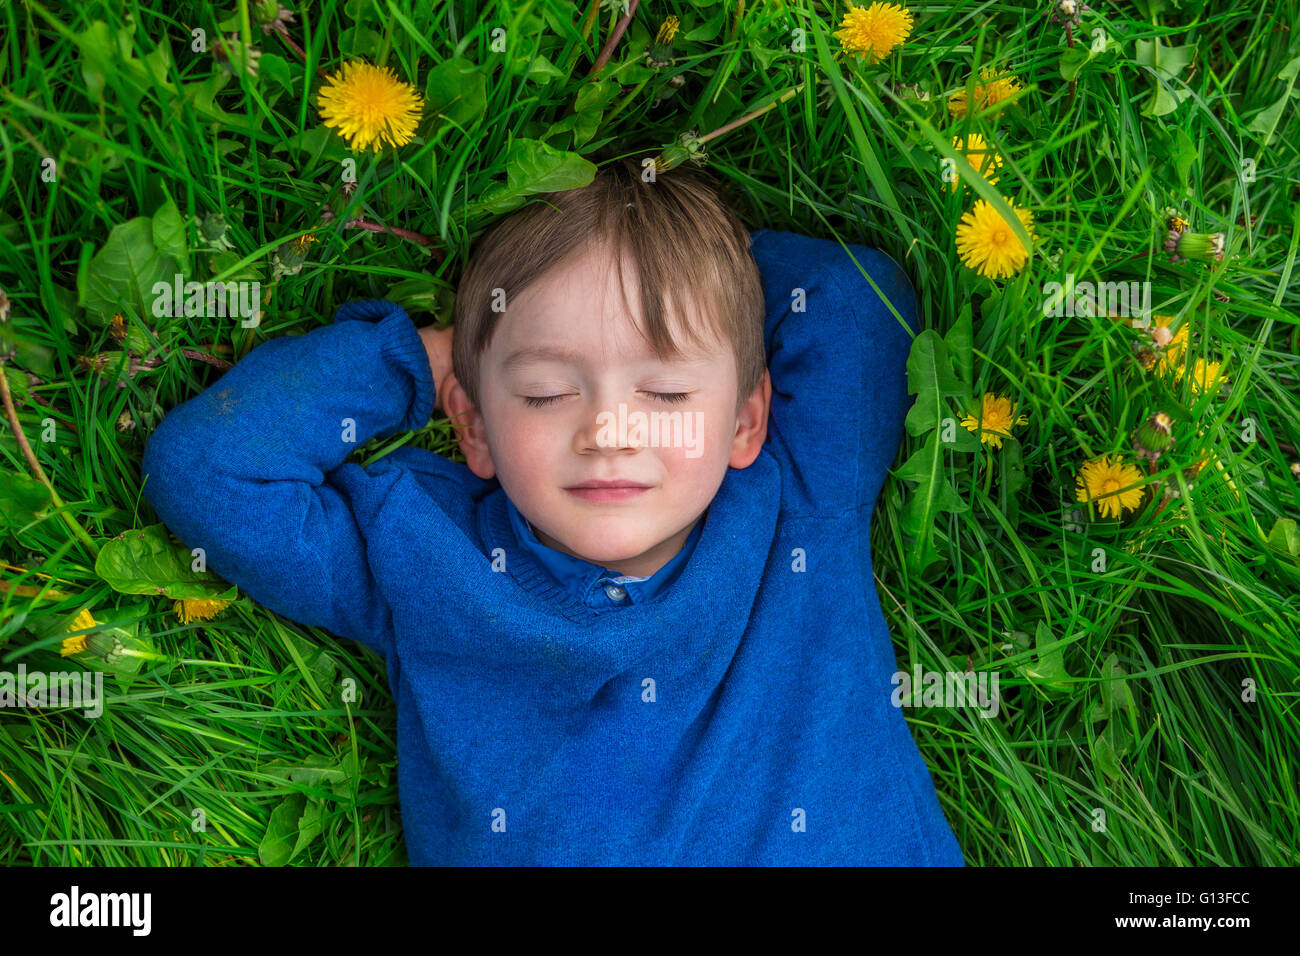 adorable child daydreaming in a field of flowers - Stock Image